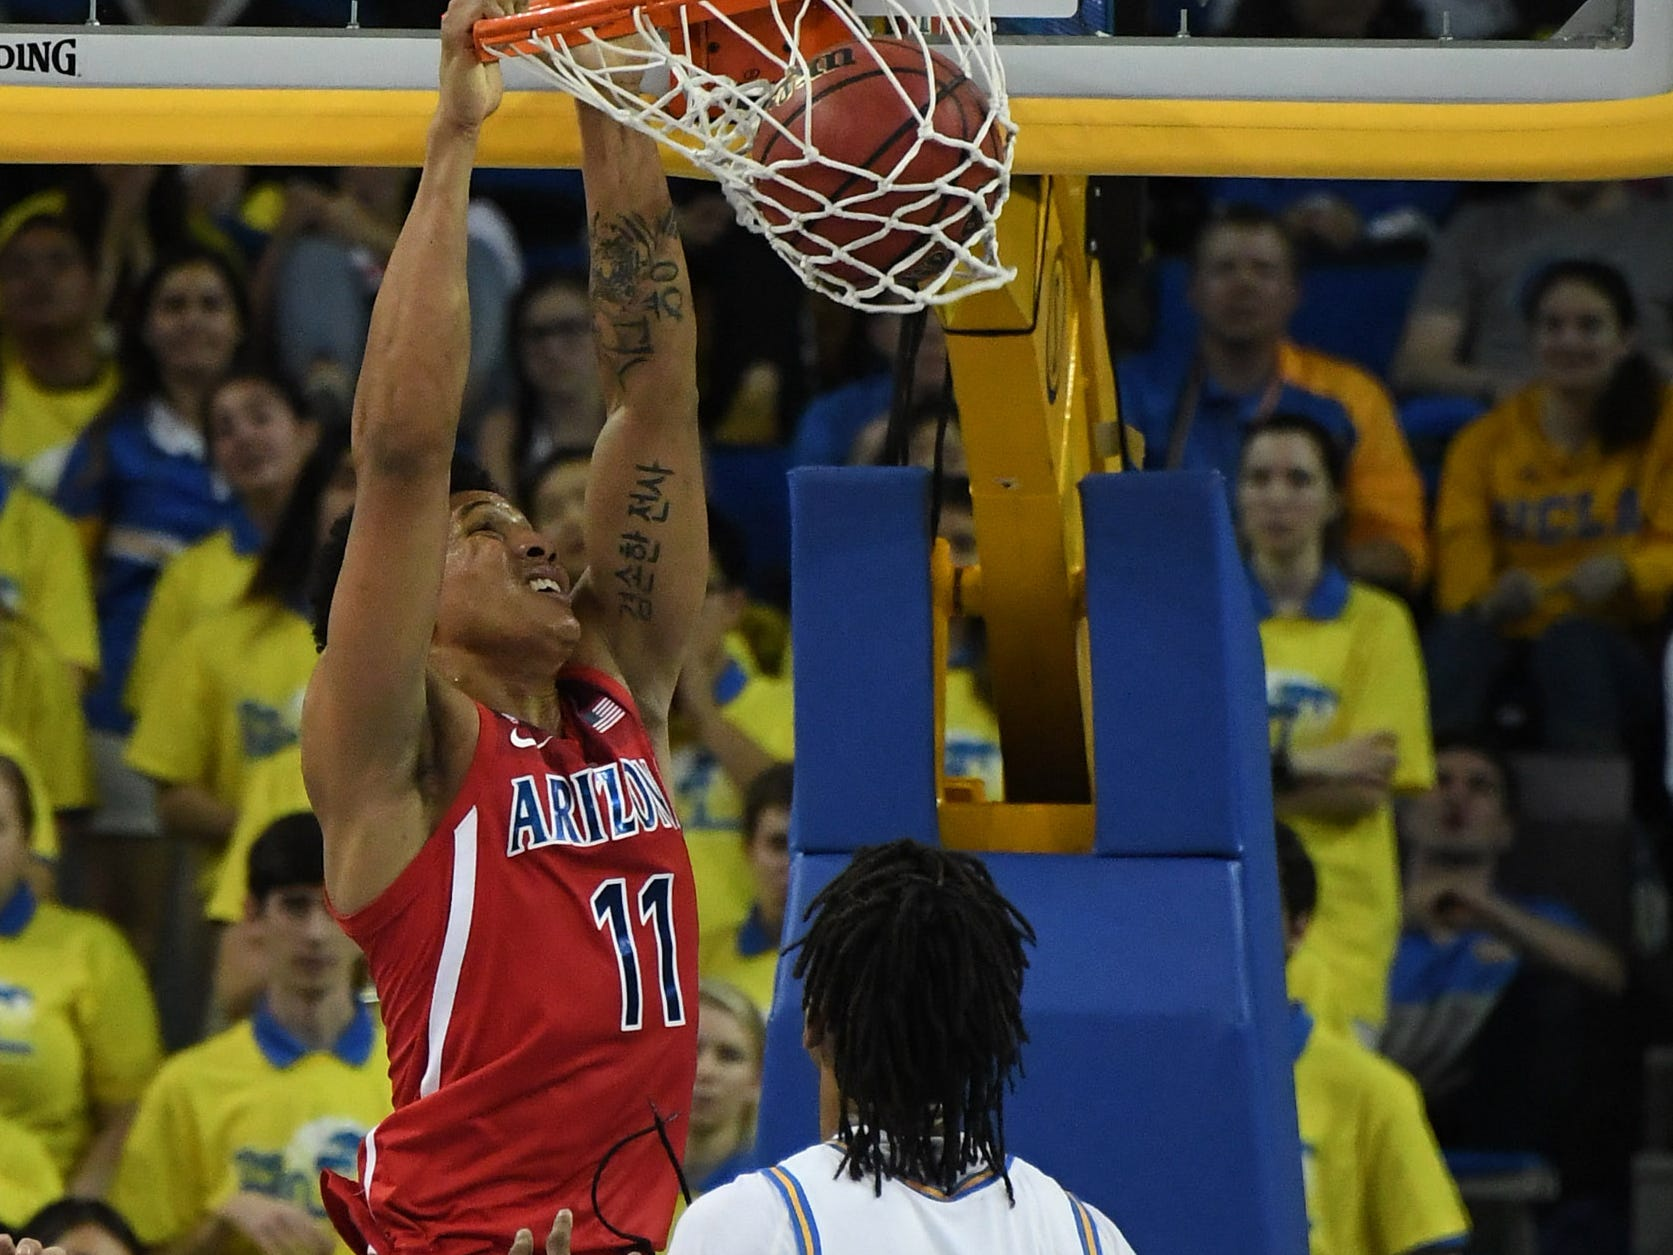 Jan 26, 2019; Los Angeles, CA, USA; Arizona Wildcats forward Ira Lee (11) dunks as UCLA Bruins center Moses Brown (1) looks on in the second half at Pauley Pavilion.